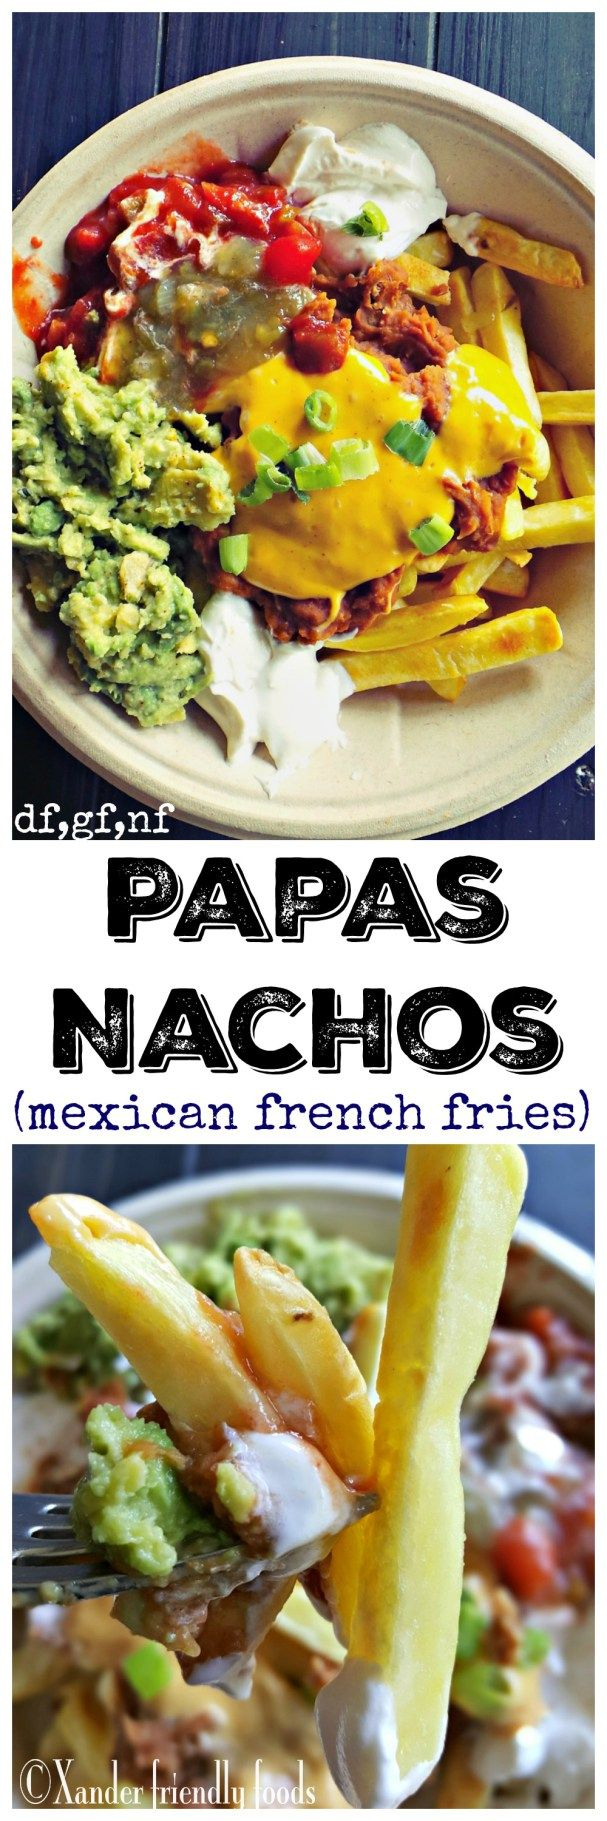 Papas Nachos -The heartiest, most delicious allergy-friendly twist on nachos…